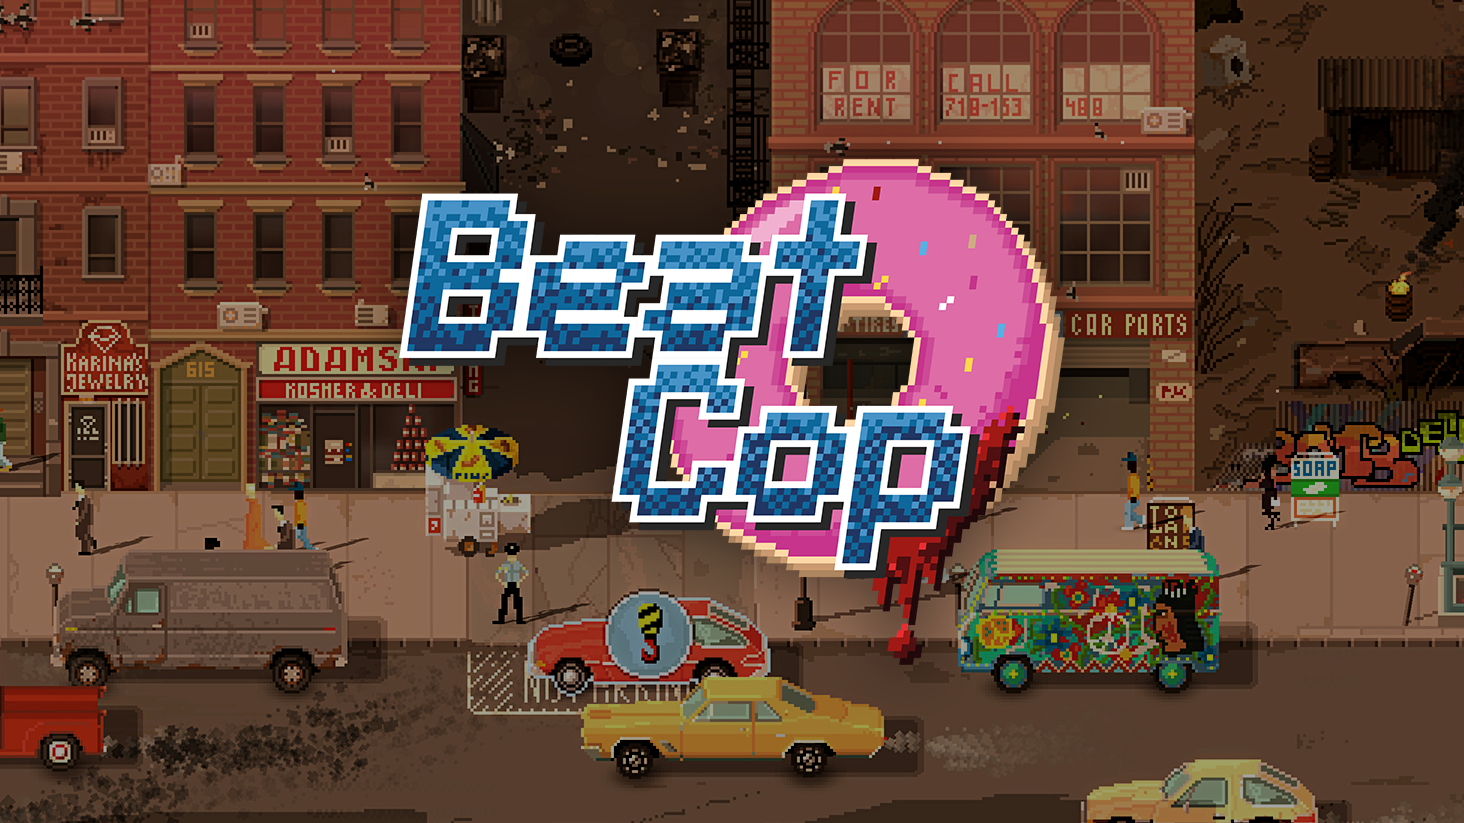 https://www.3dm-games.com/wp-content/uploads/2017/03/beatcop.png